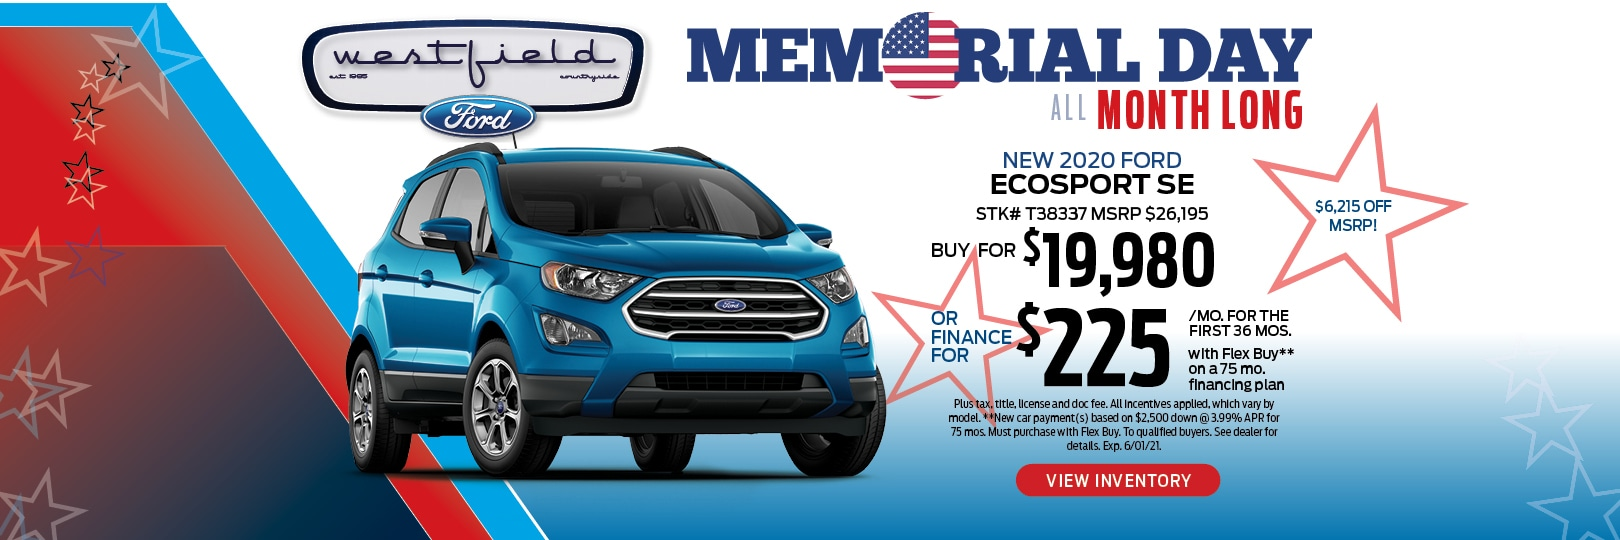 2020 Ford Ecosport  Buy Offer| Countryside, IL